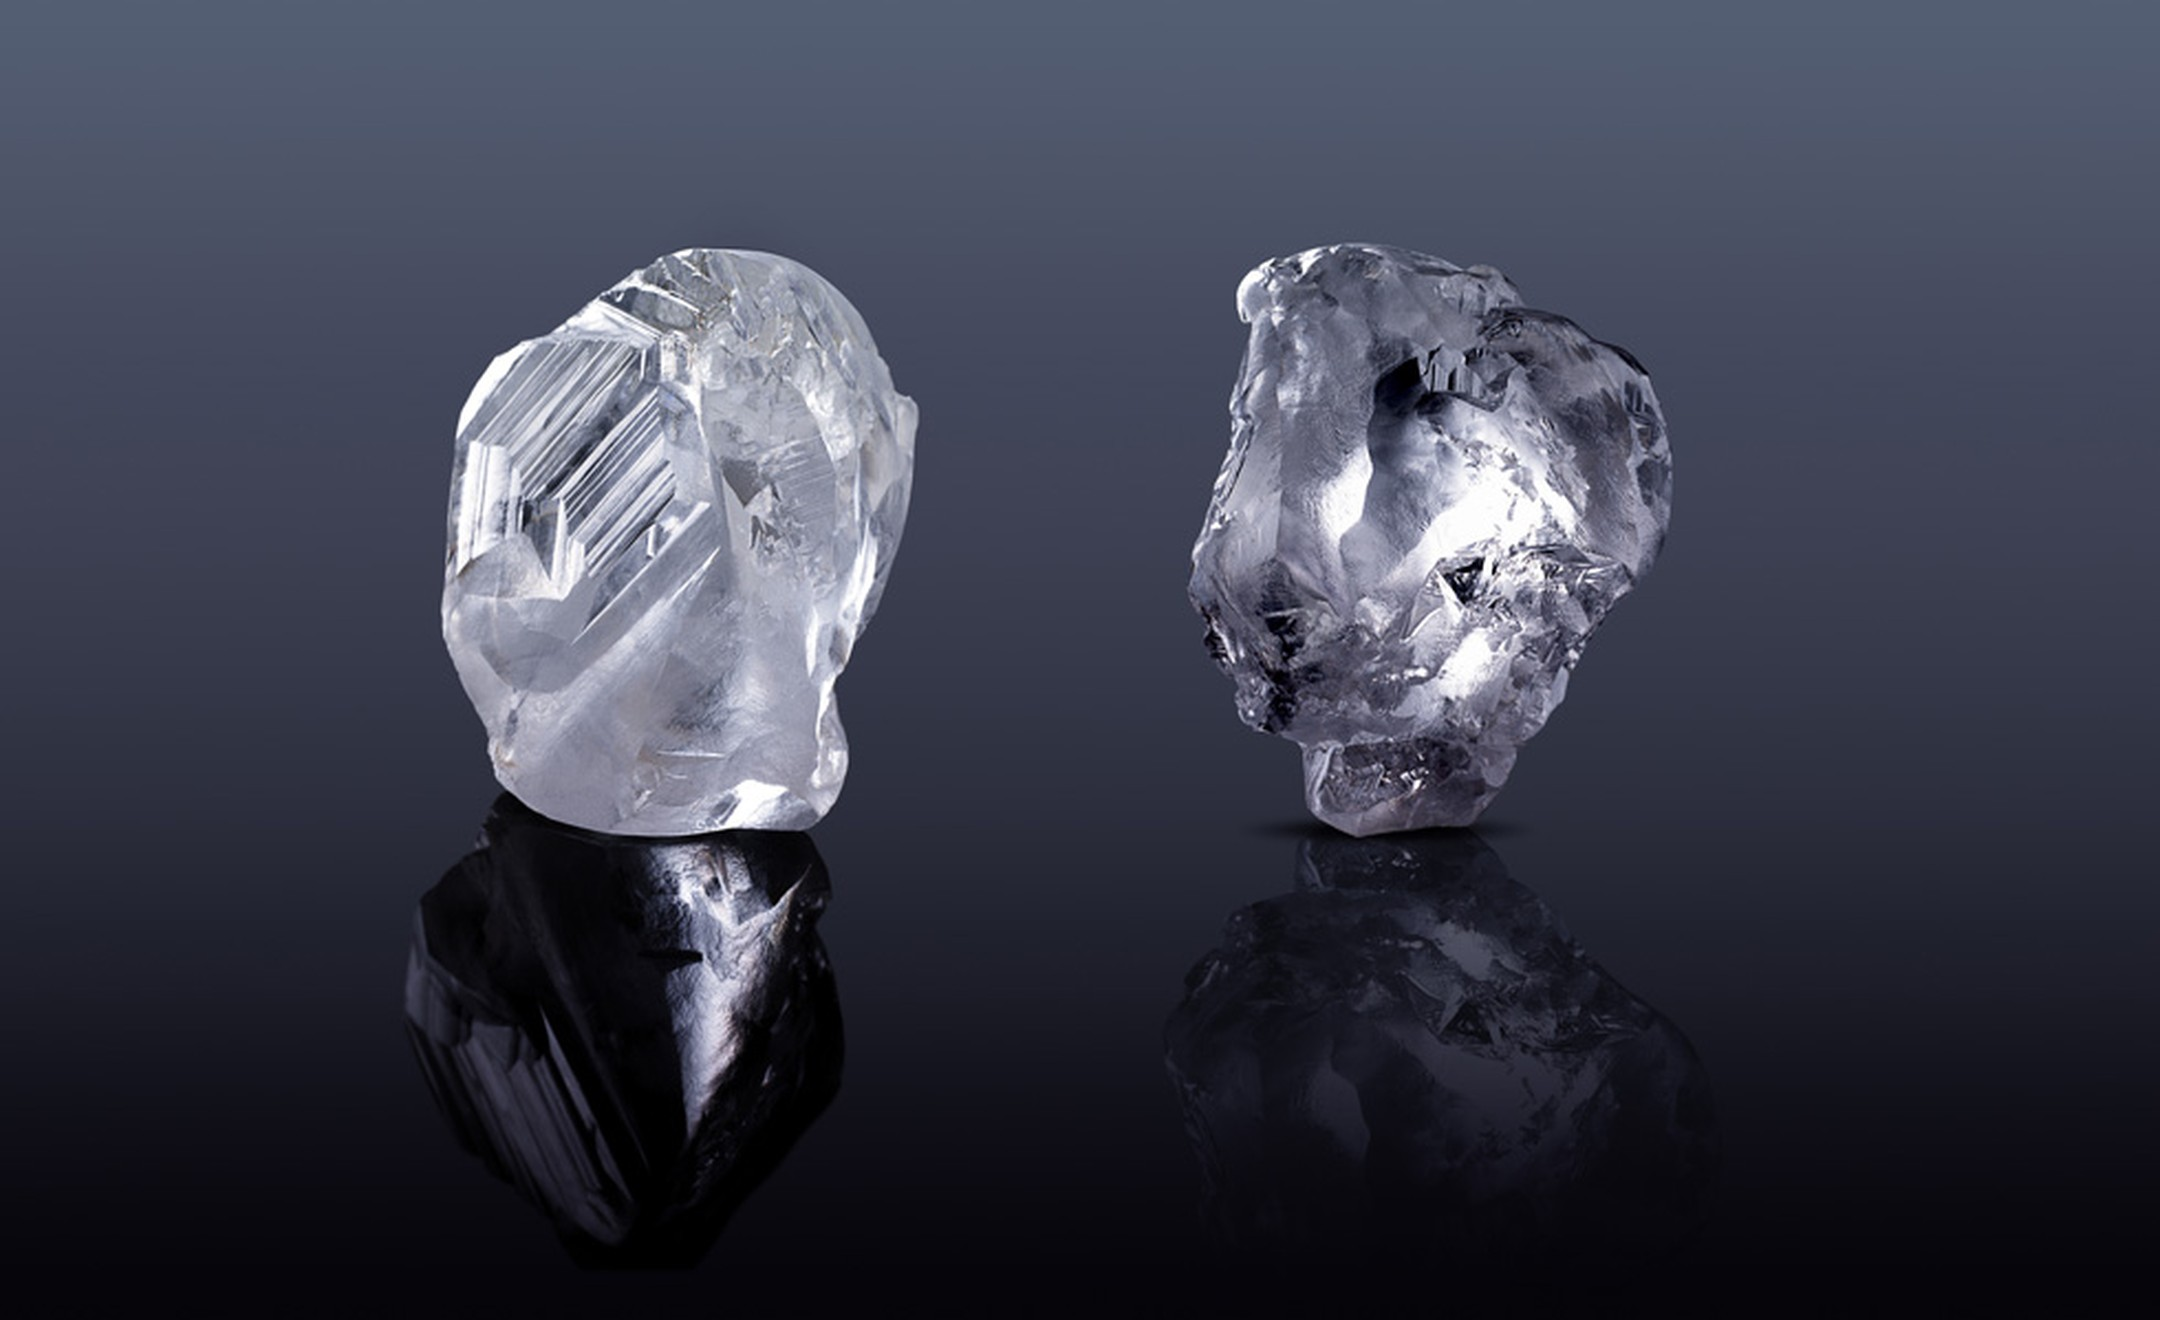 The two rough diamonds of 184-carats and 196-carats that Laurence Graff acquired at tender in Antwerp on the 24 November 2010 for $22,736,360